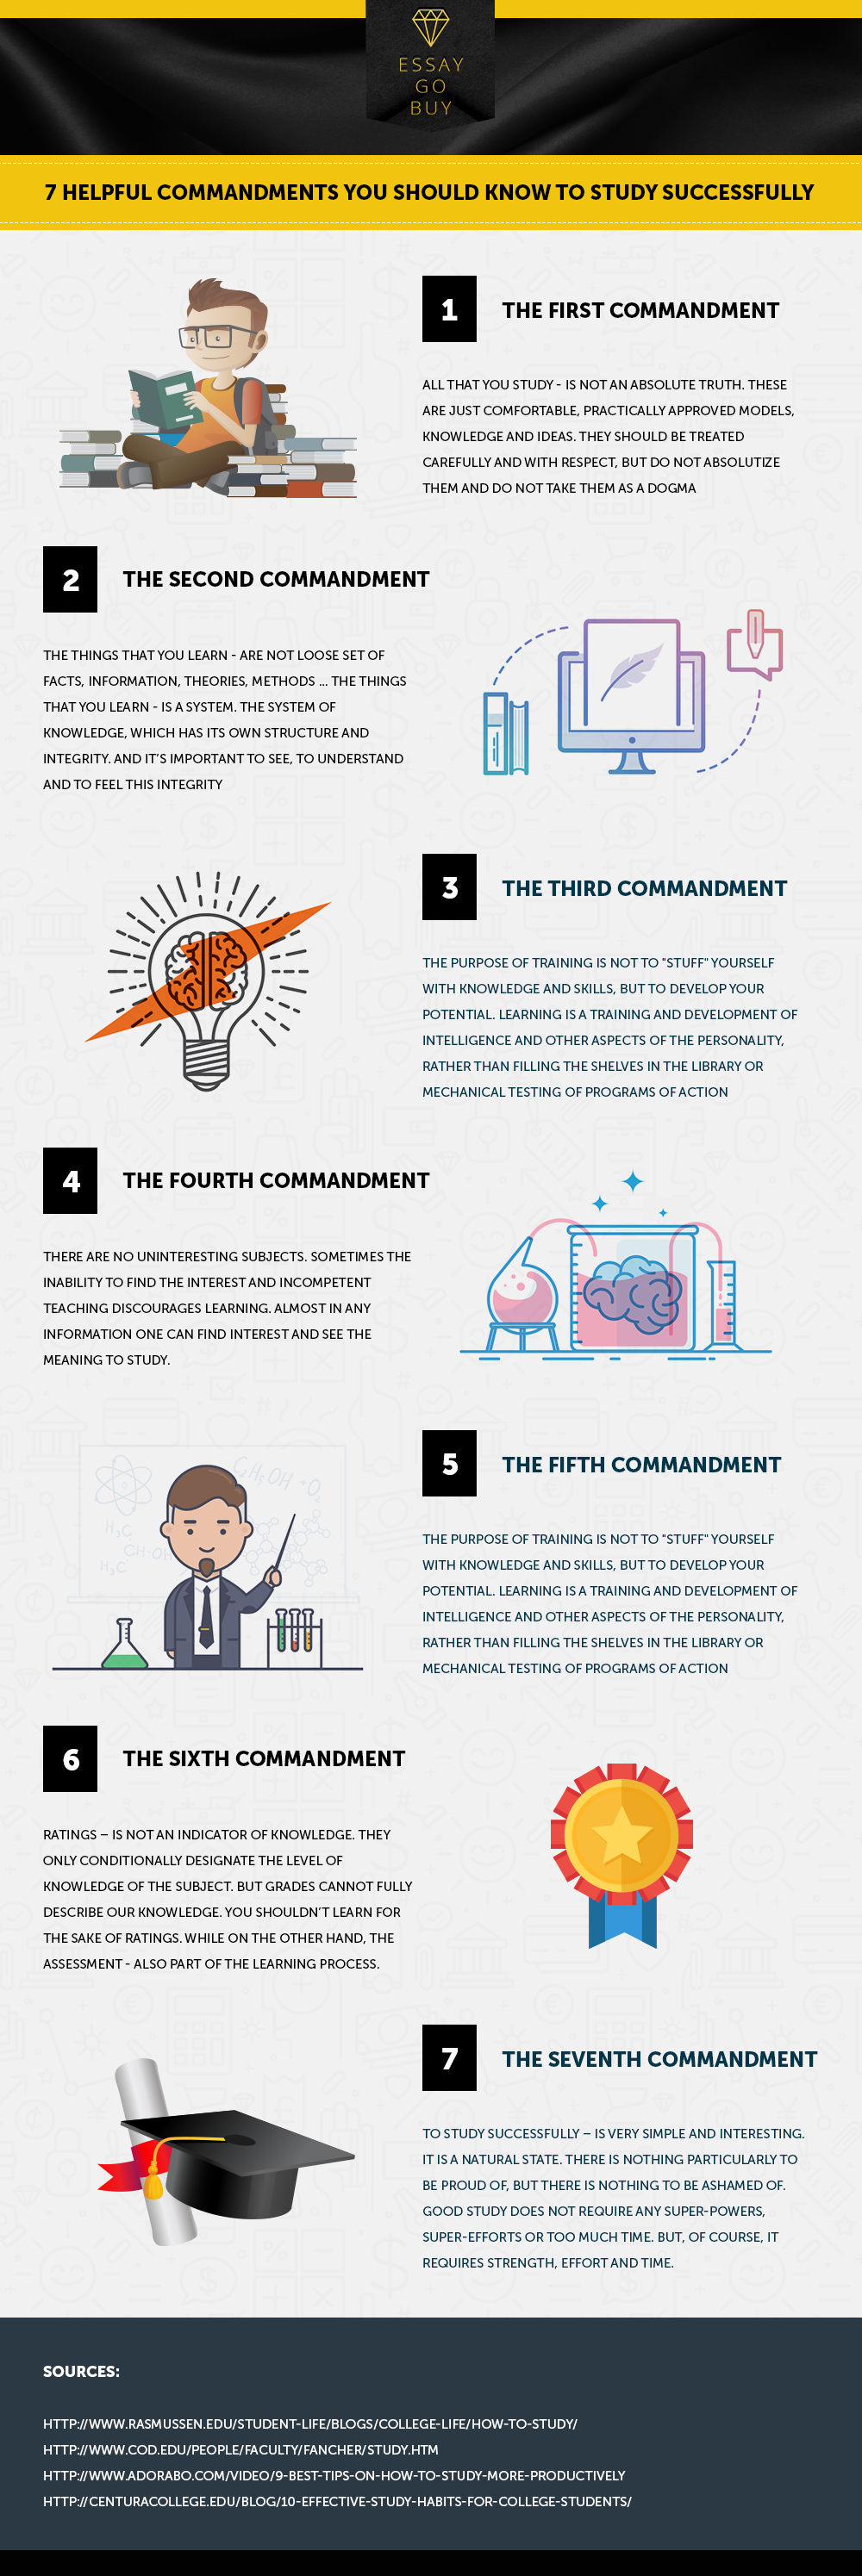 7 Helpful Commandments You Should Know to Study Successfully [Infographic] | EssayGoBuy.com